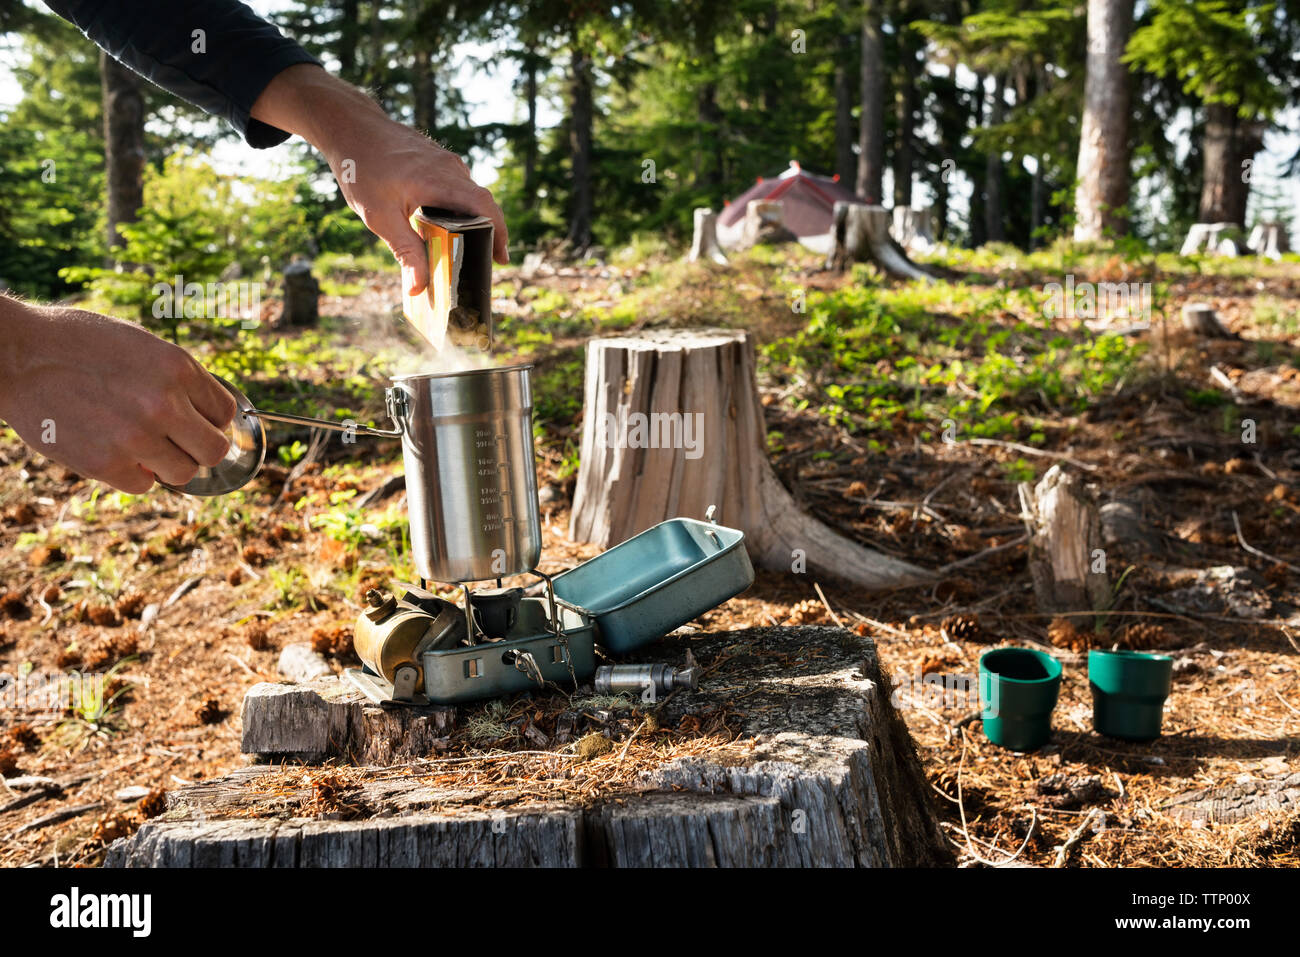 Cropped image of man pouring food in container over camping stove in forest - Stock Image